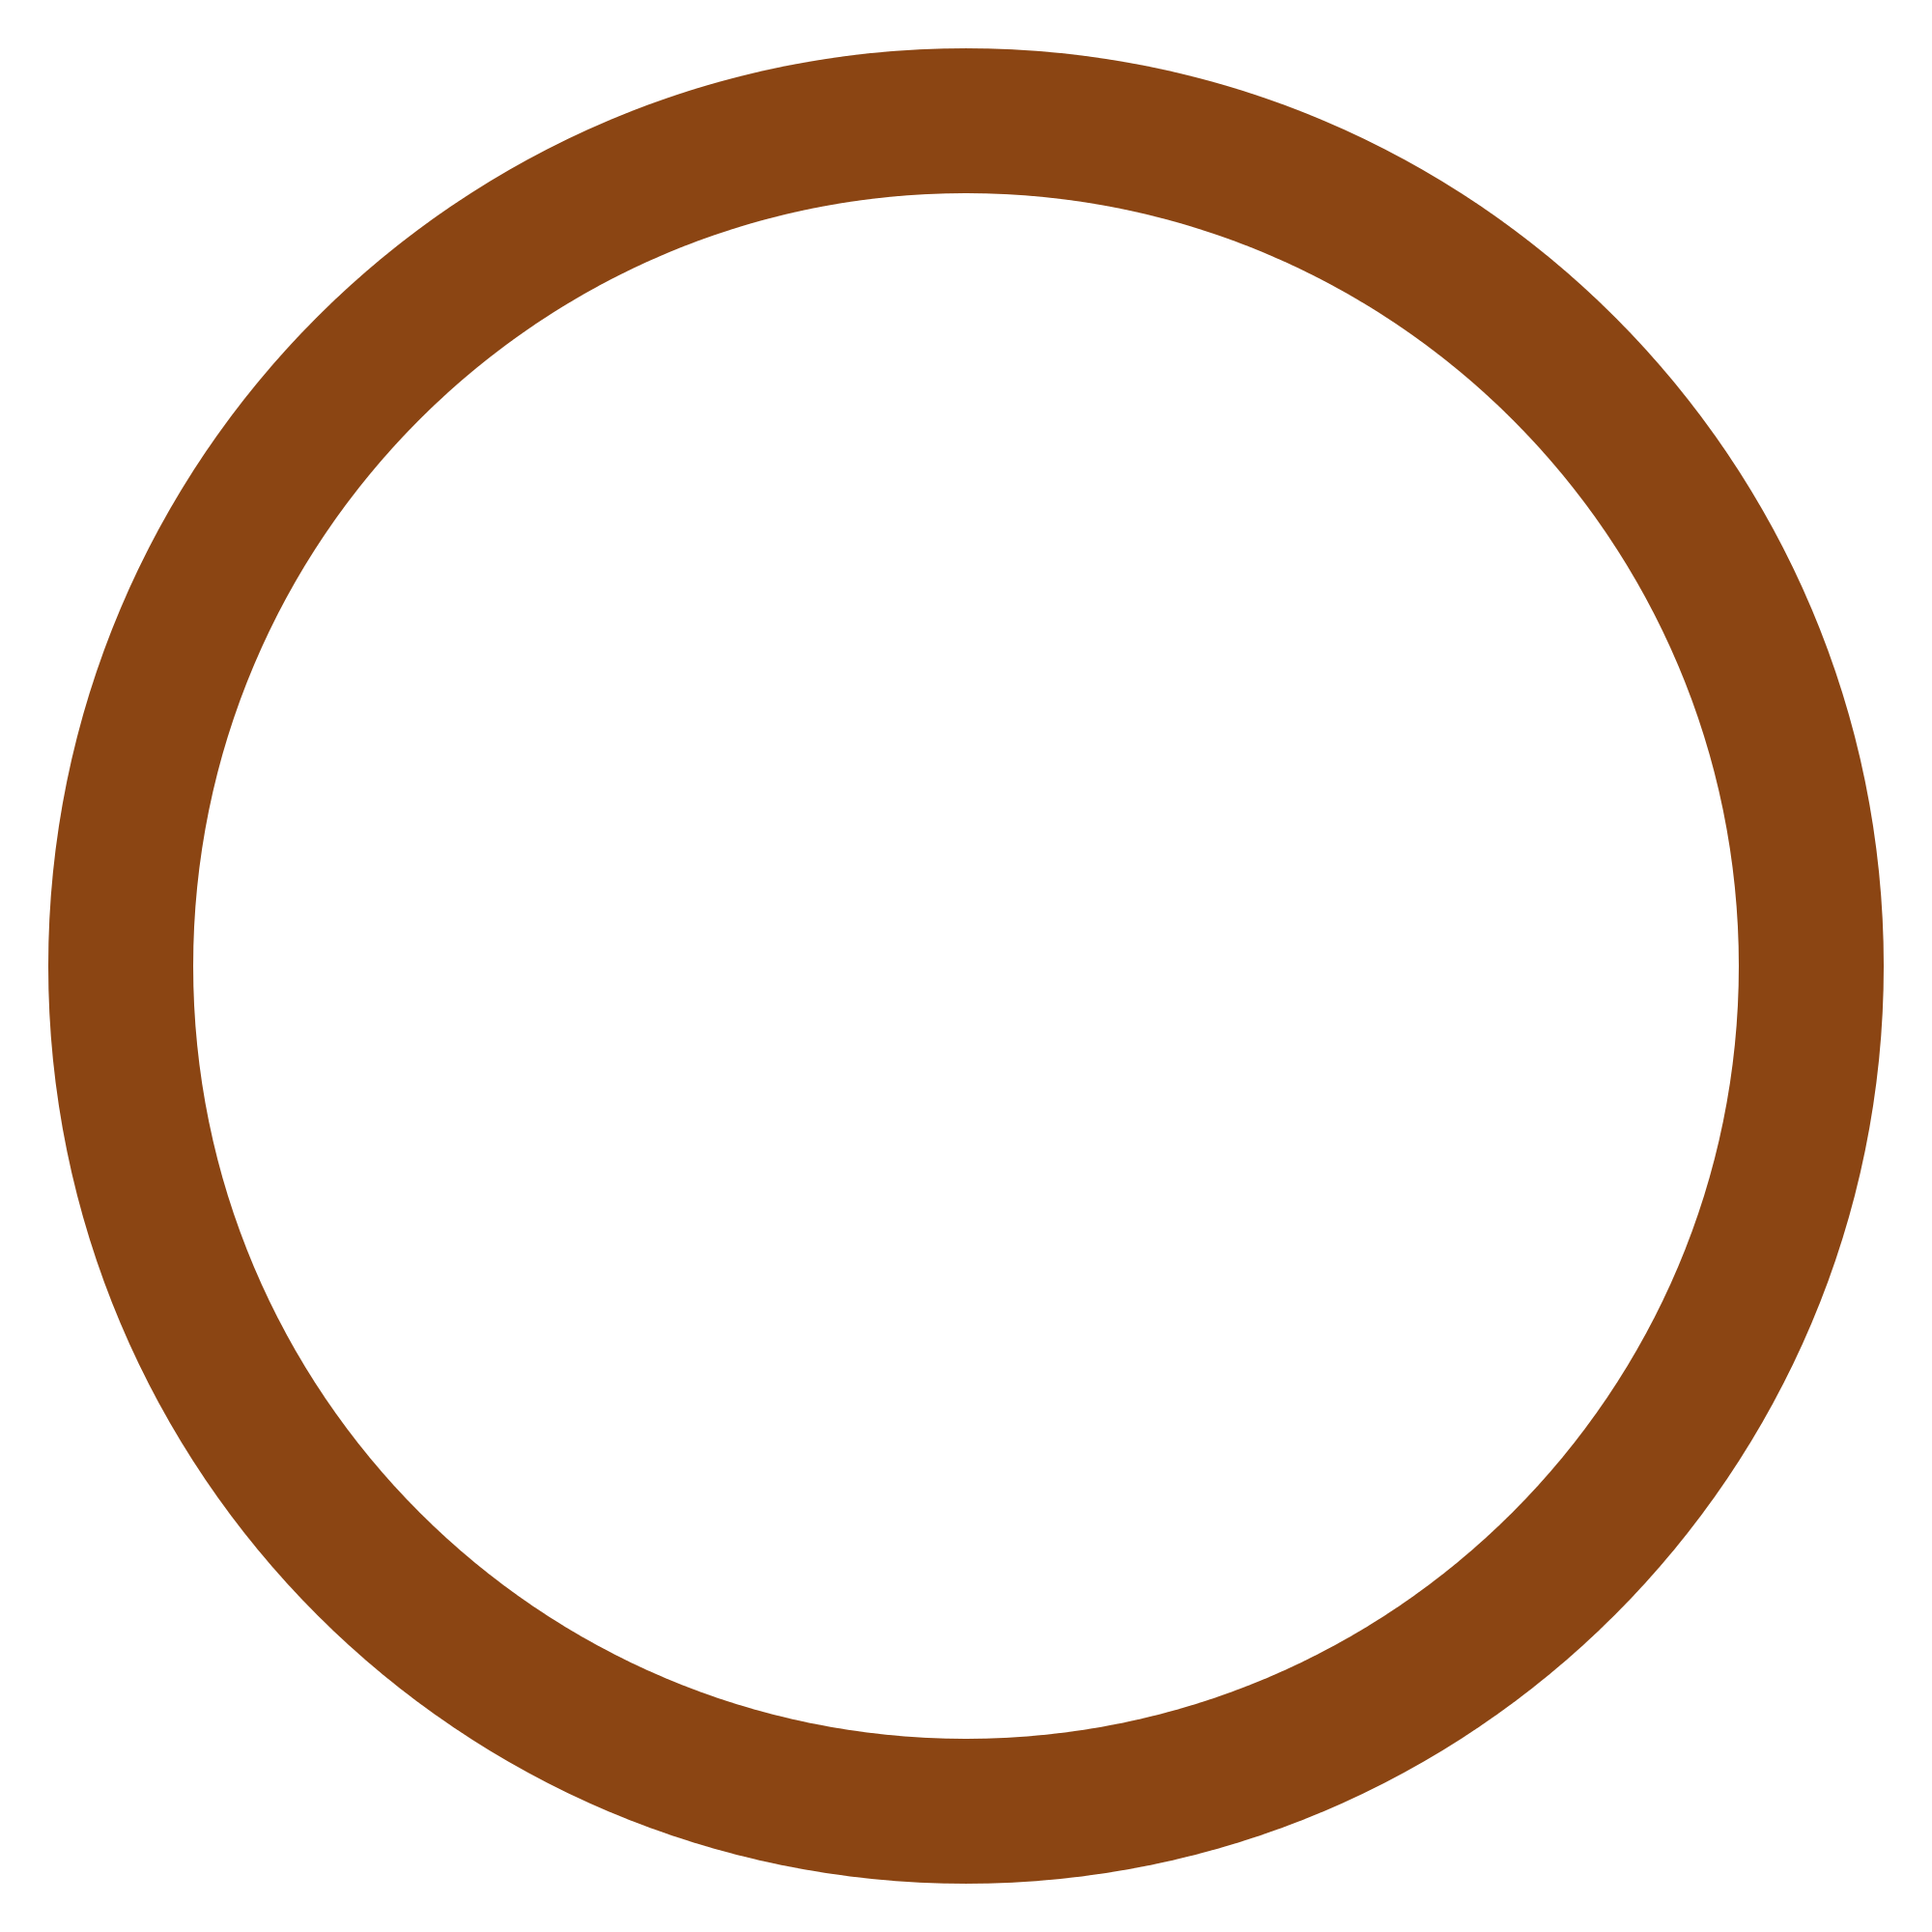 Brown circle png. File svg wikimedia commons